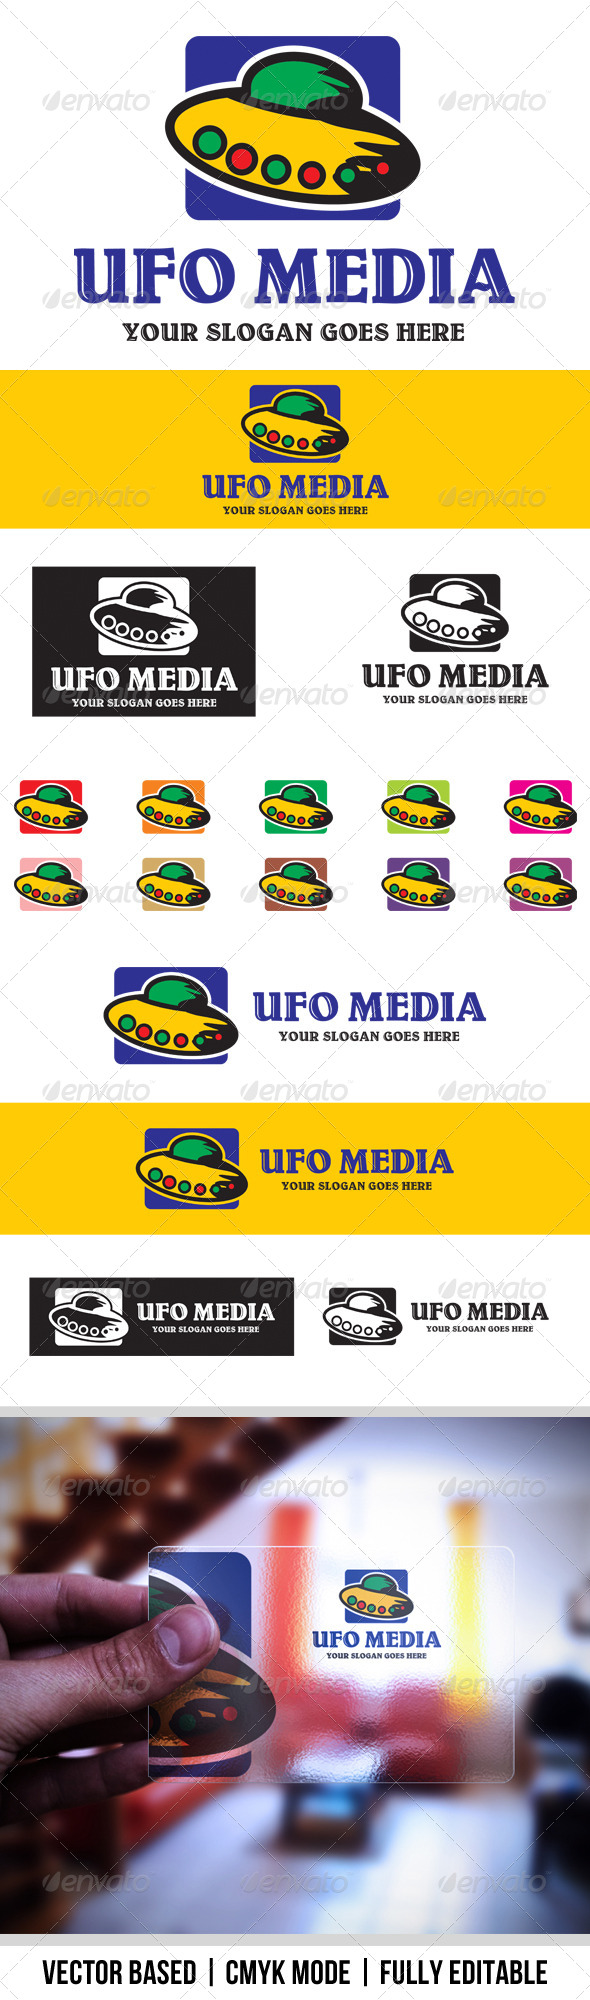 GraphicRiver Ufo Media logo 3971091